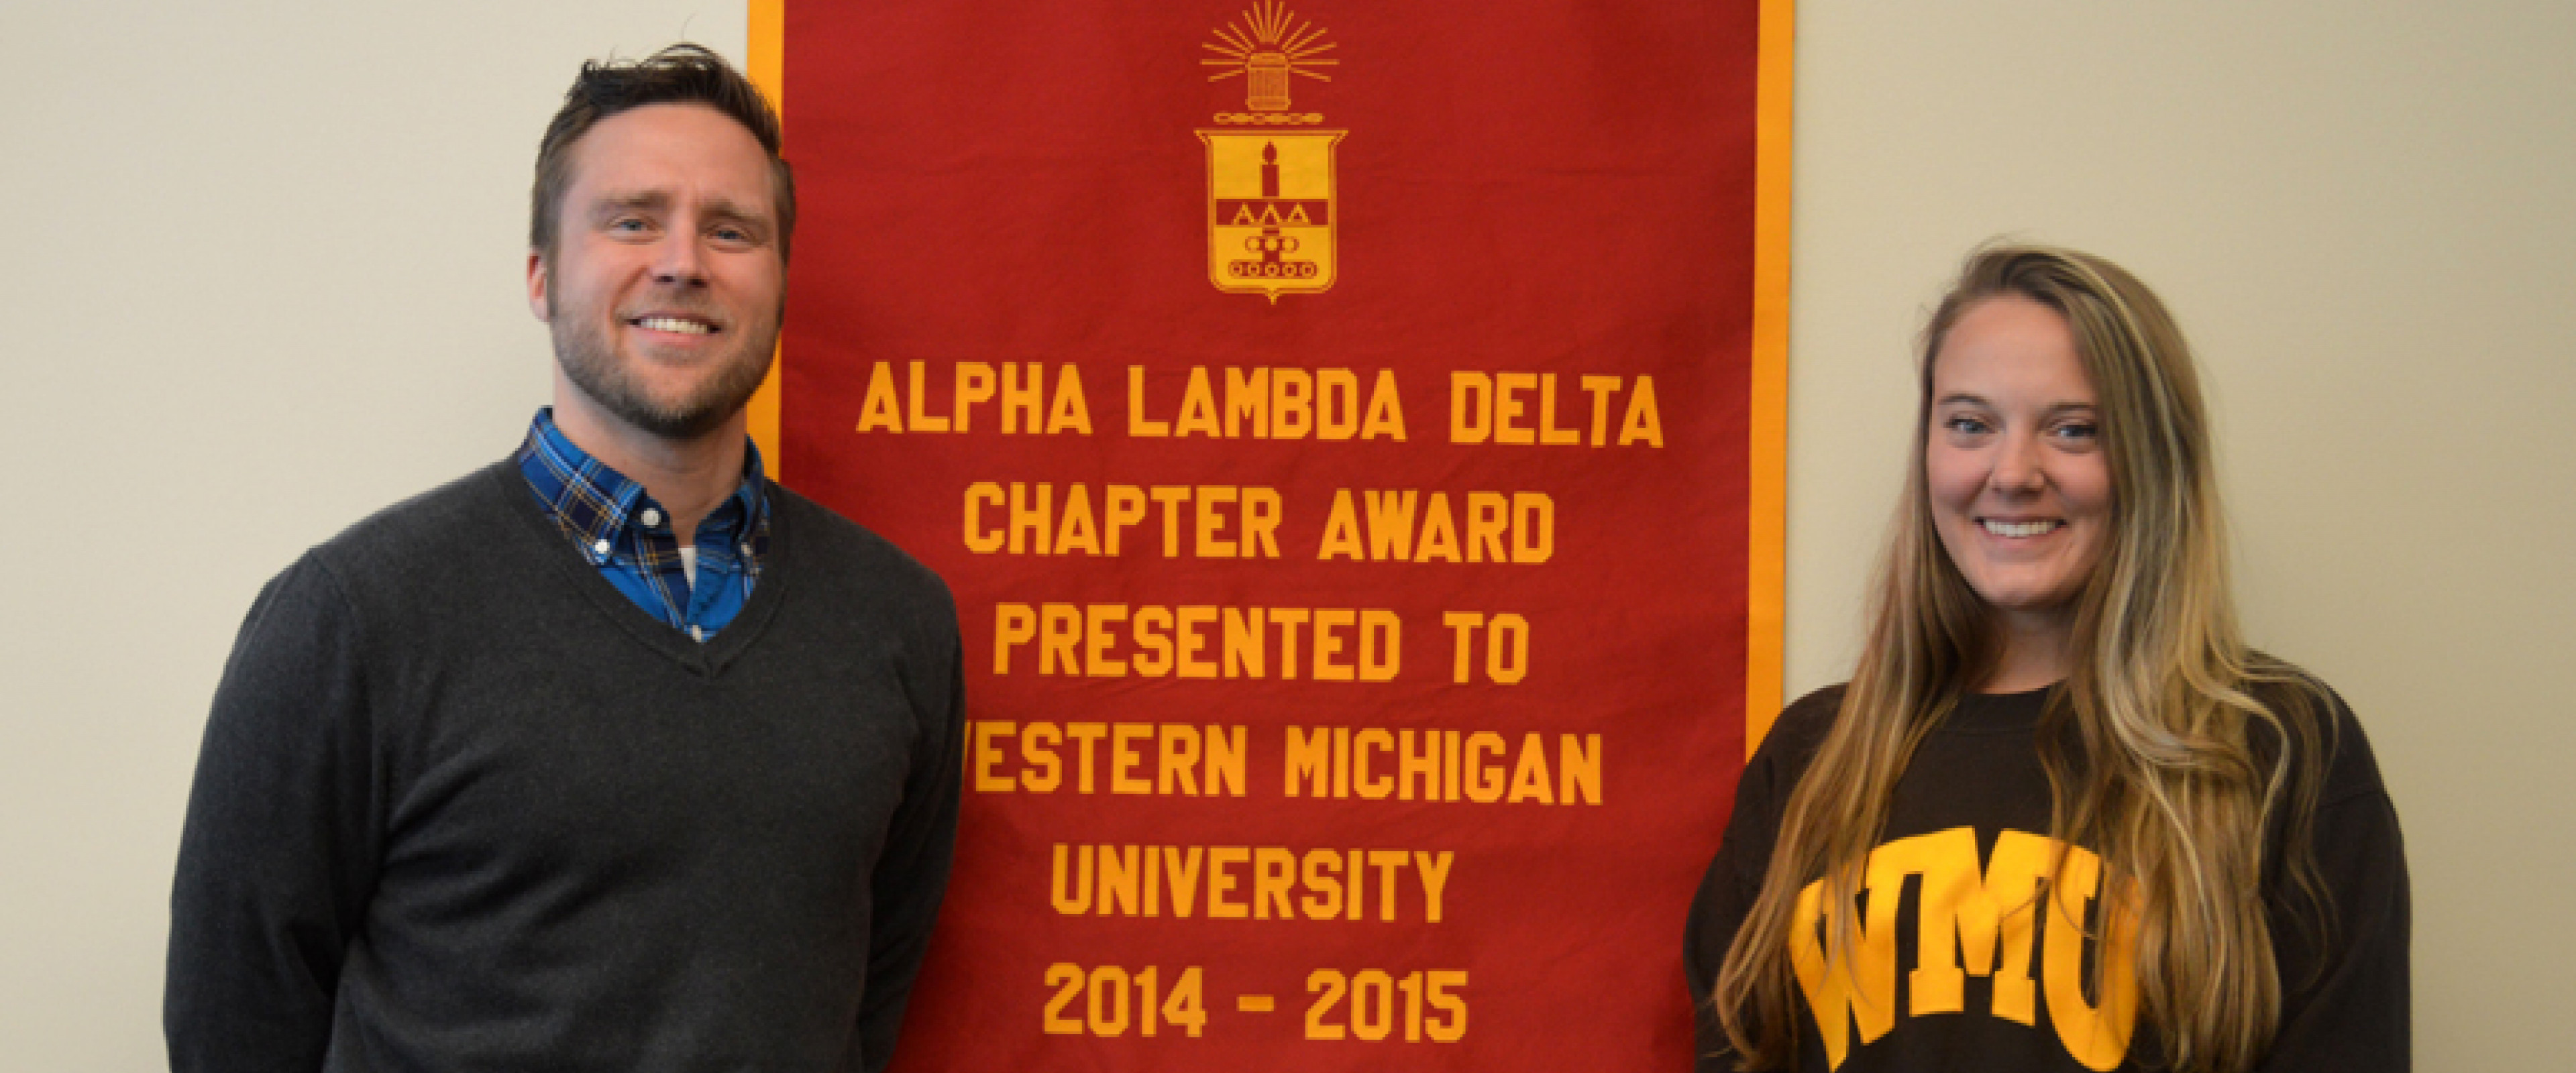 Anthony Helms and Erin Caspers standing in front of an Alpha Lambda Delta banner.